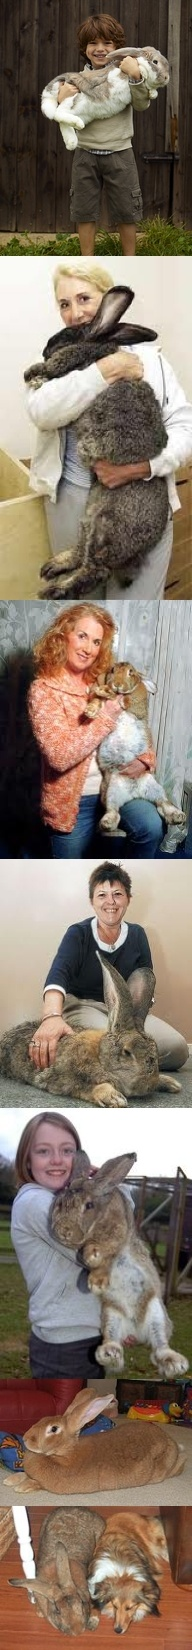 """REAL - The top image is going around Pinterest. I found it on a Catalog Website as an ad. It could easily be real. The next two are owned by Annette and are Roberto and Amy respectively. Both have held the largest rabbit in the world title. The next image shows Benny with his owner Sharon. The next two images are just more examples of verified large rabbits. One of the large breeds is the """"Flemish Giant"""". If you've seen """"Herman"""" he's real too. I included a link to Wikipedia."""